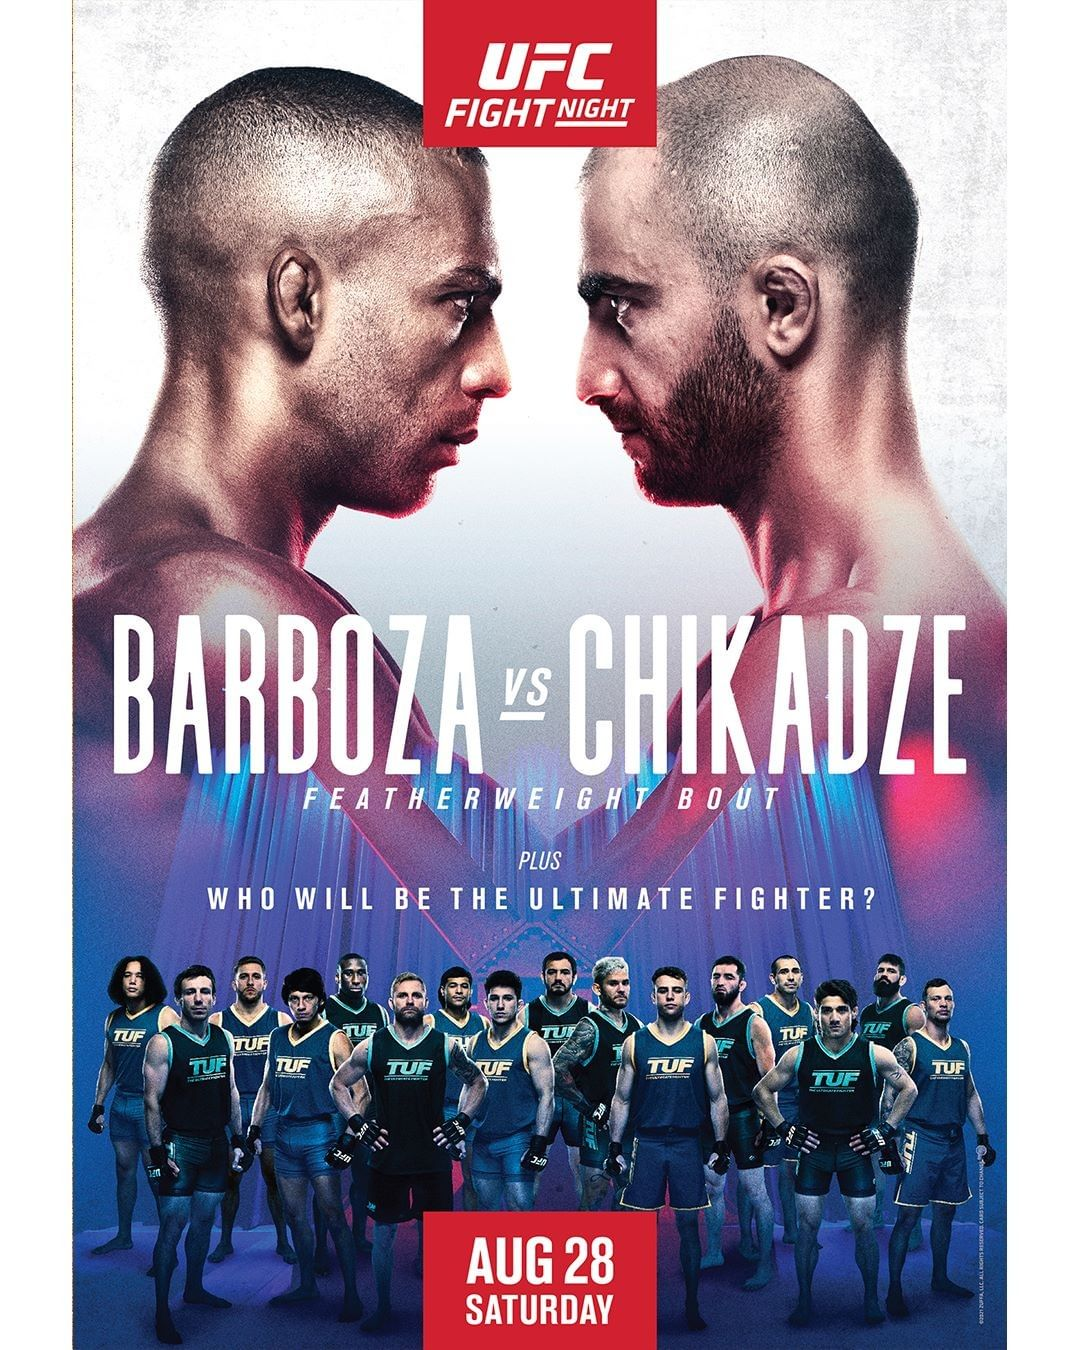 UFC Fight Night 195 Fight Card Poster